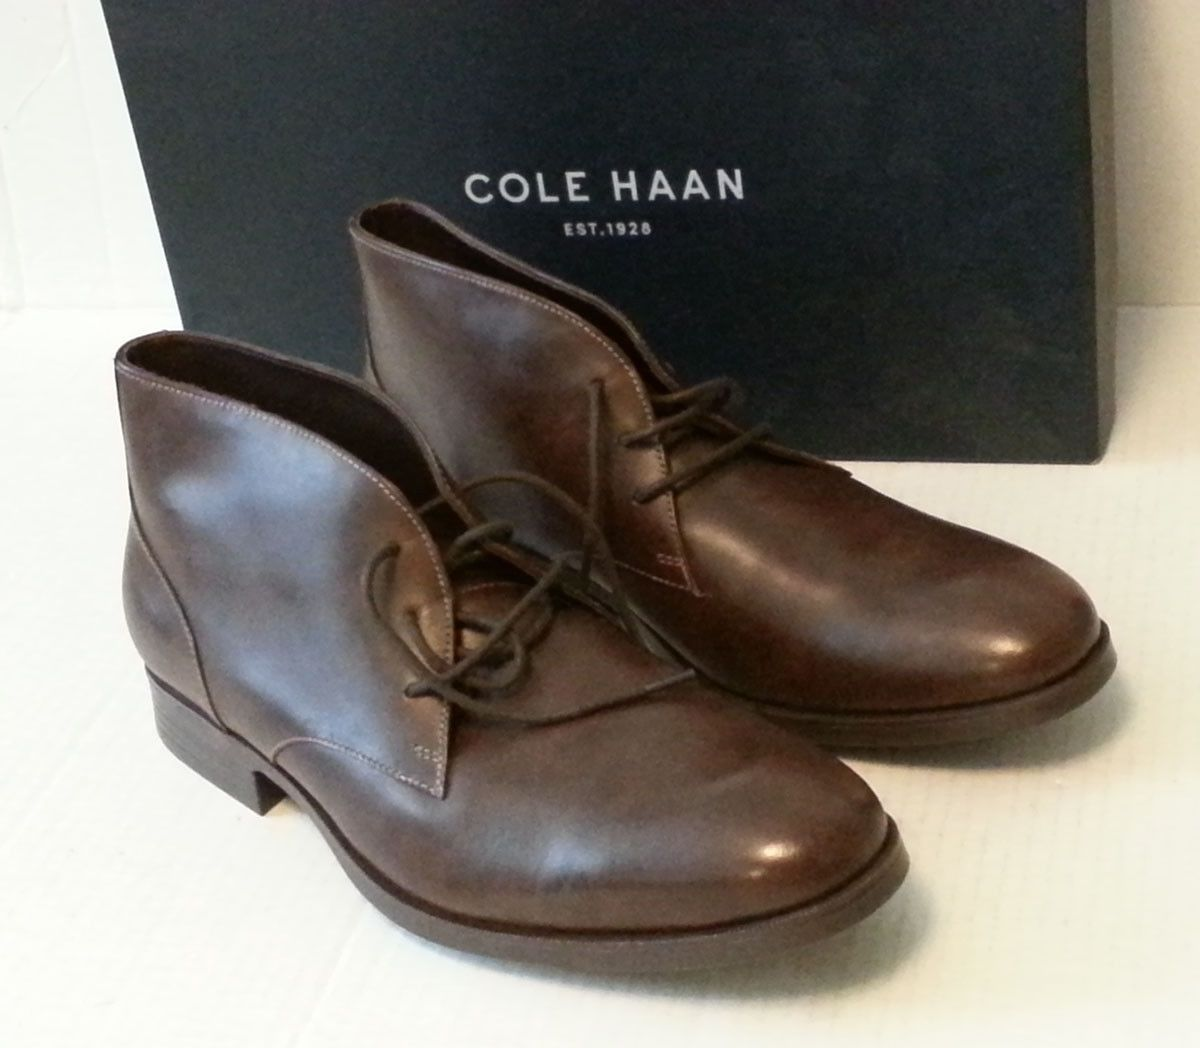 Cole Haan Men Size 9 Copley Chukka Boots Chestnut Brown Leather C13153 INDIA